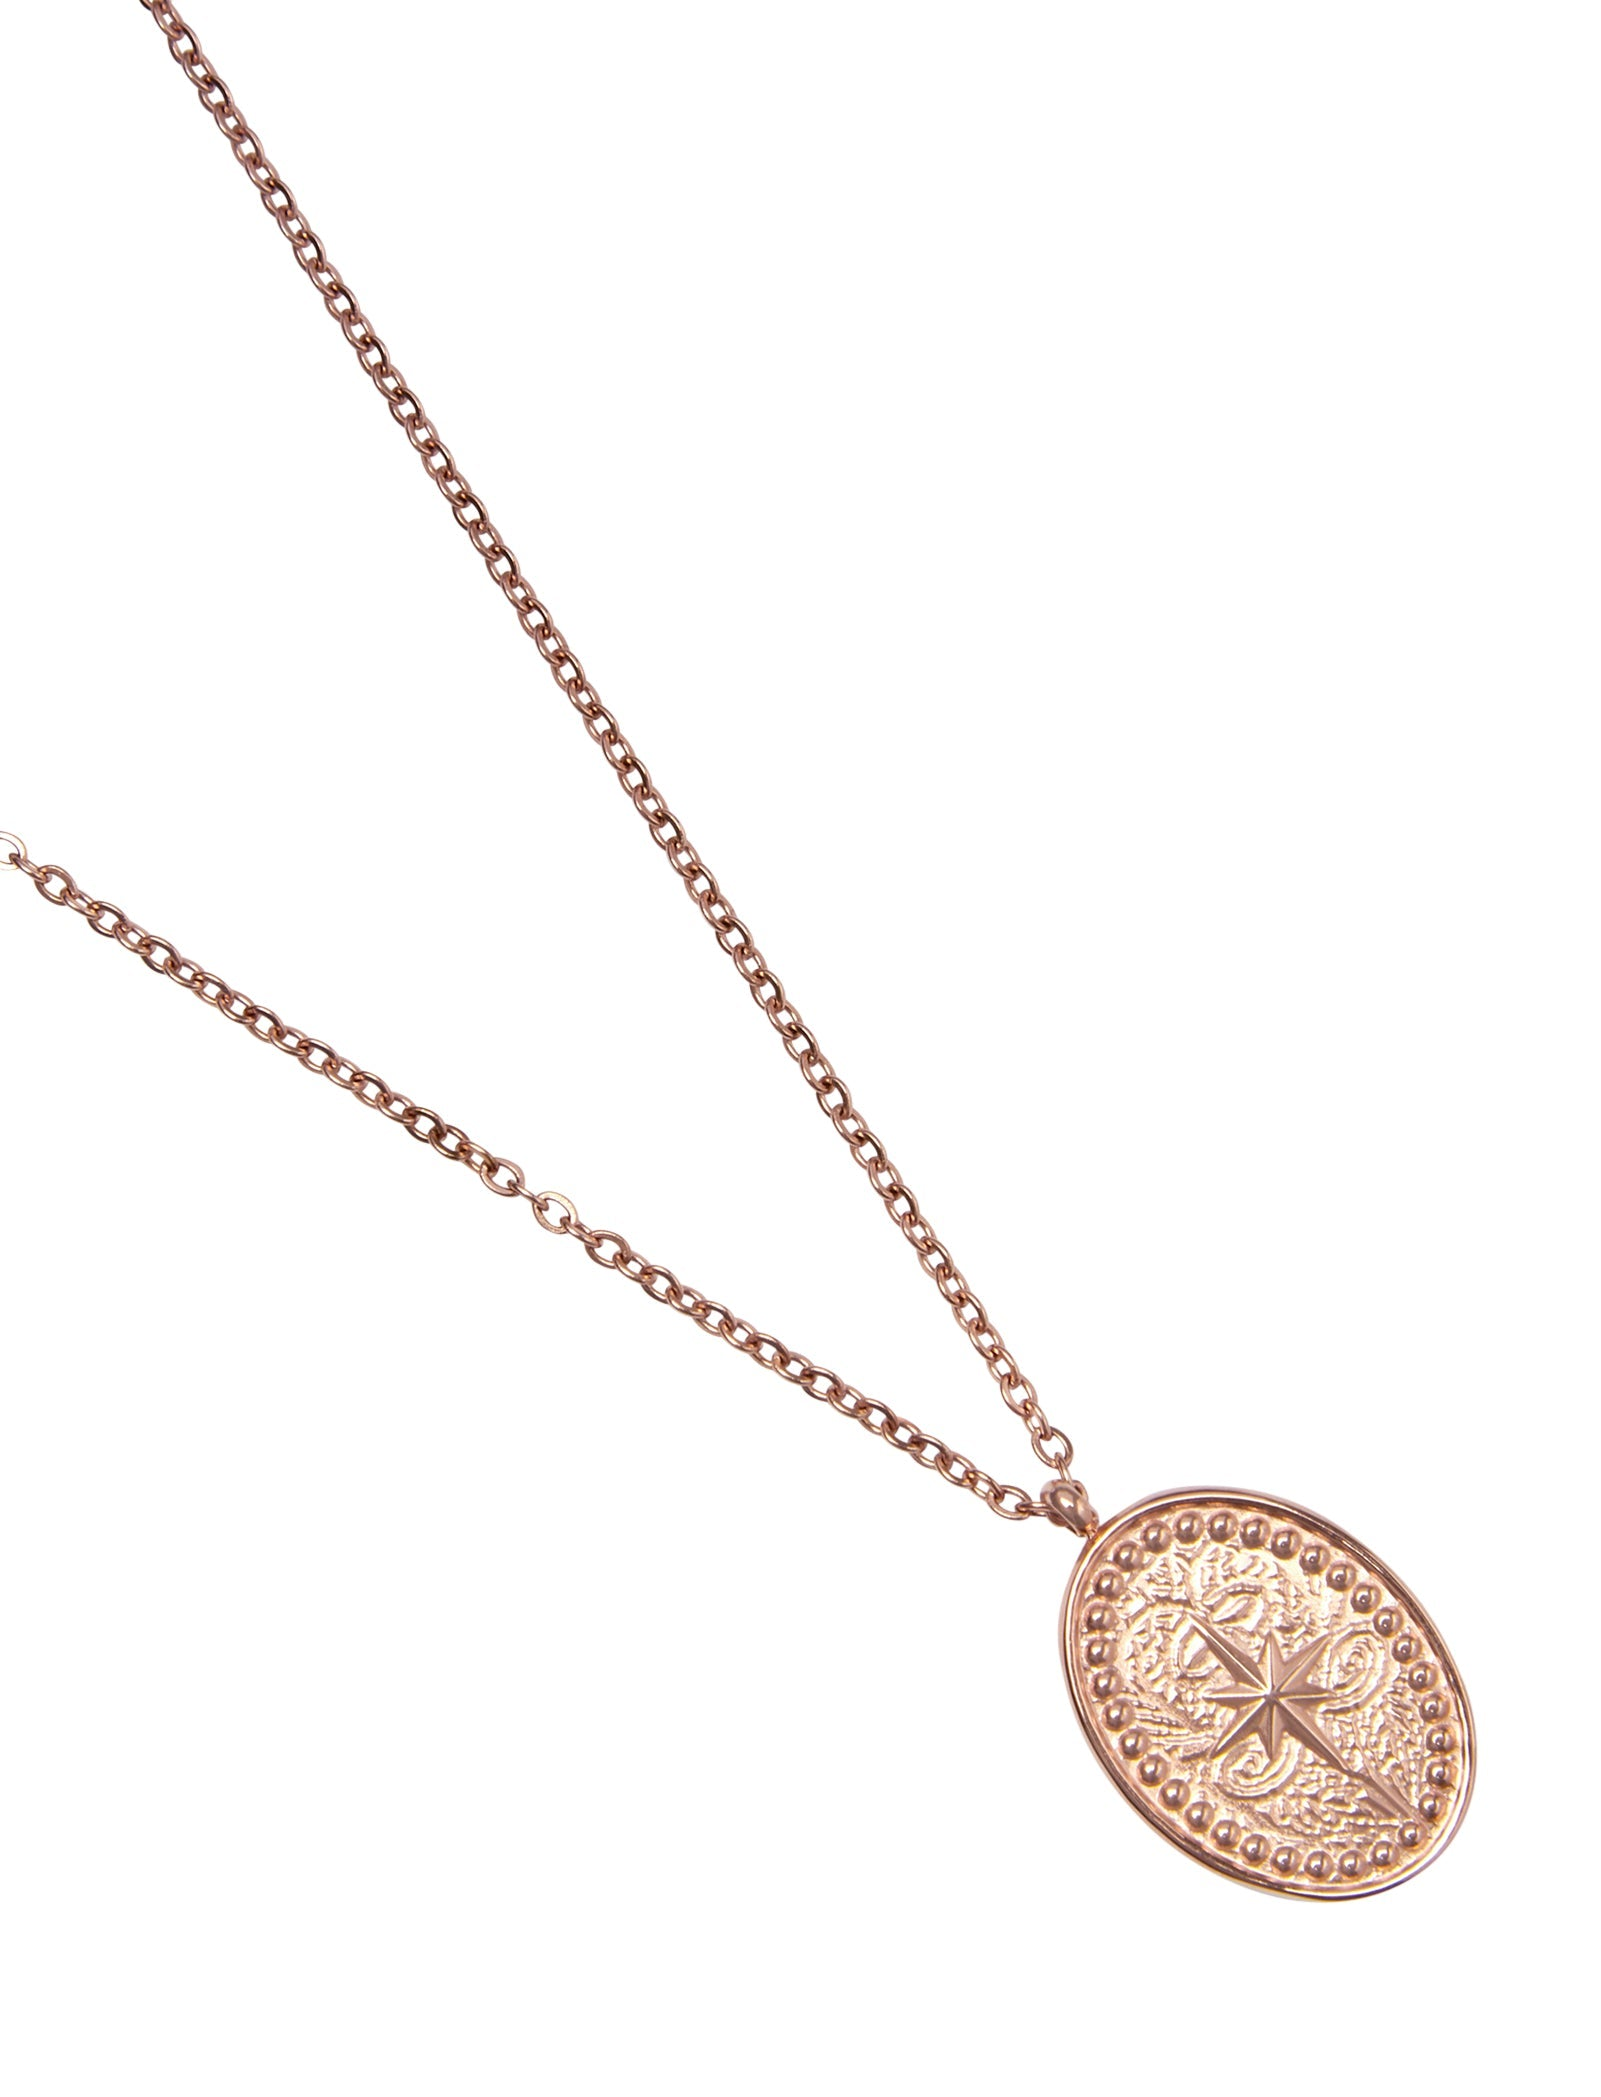 Sun Seeker Necklace